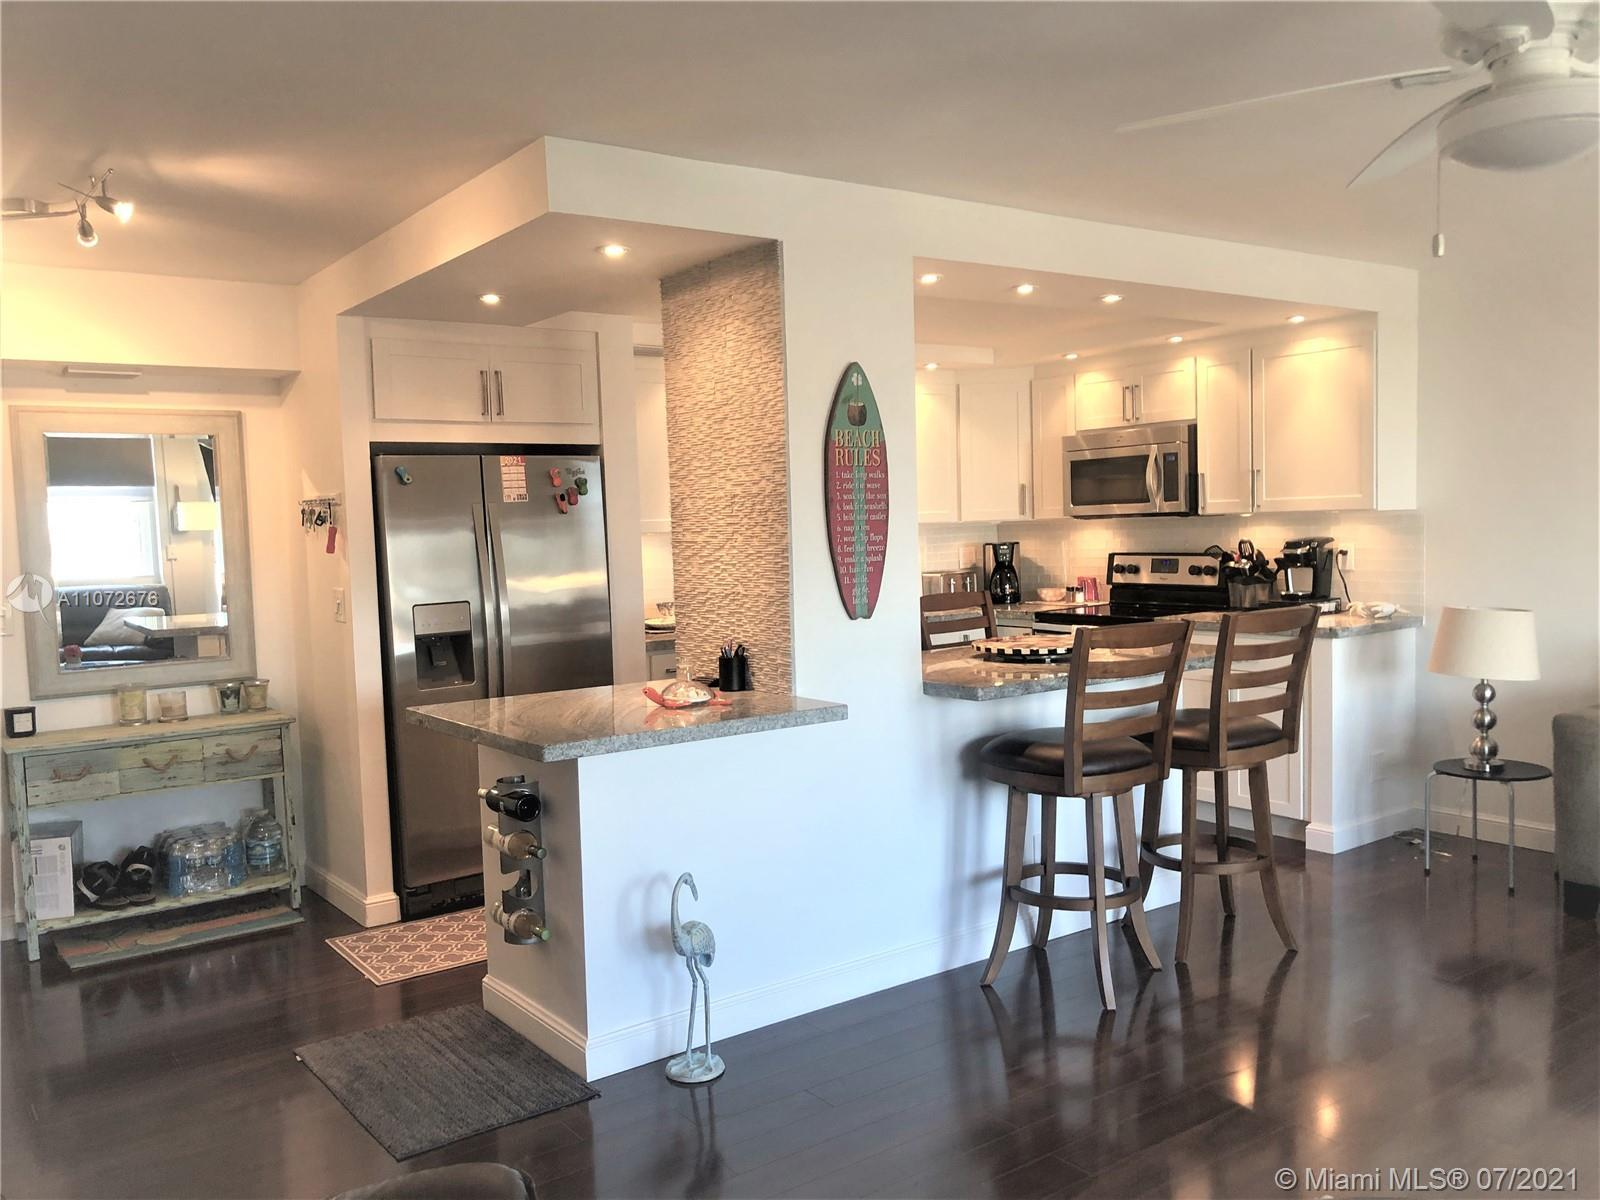 Awesome remodeled 1 bedroom 1 bath unit in desirable East Fort Lauderdale location, only minutes to